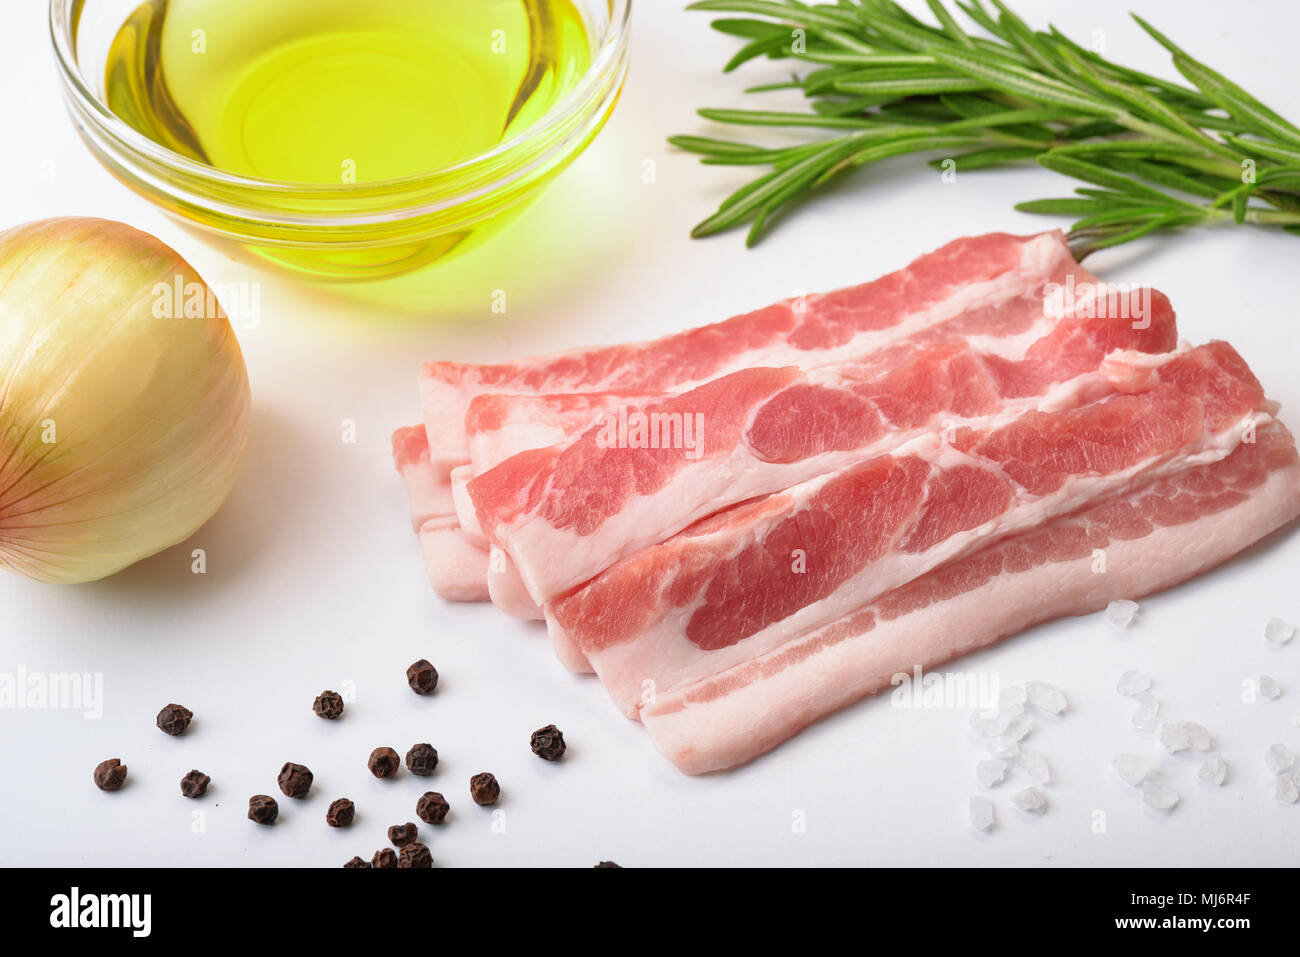 Raw bacon slices with condiments on white background - Stock Image